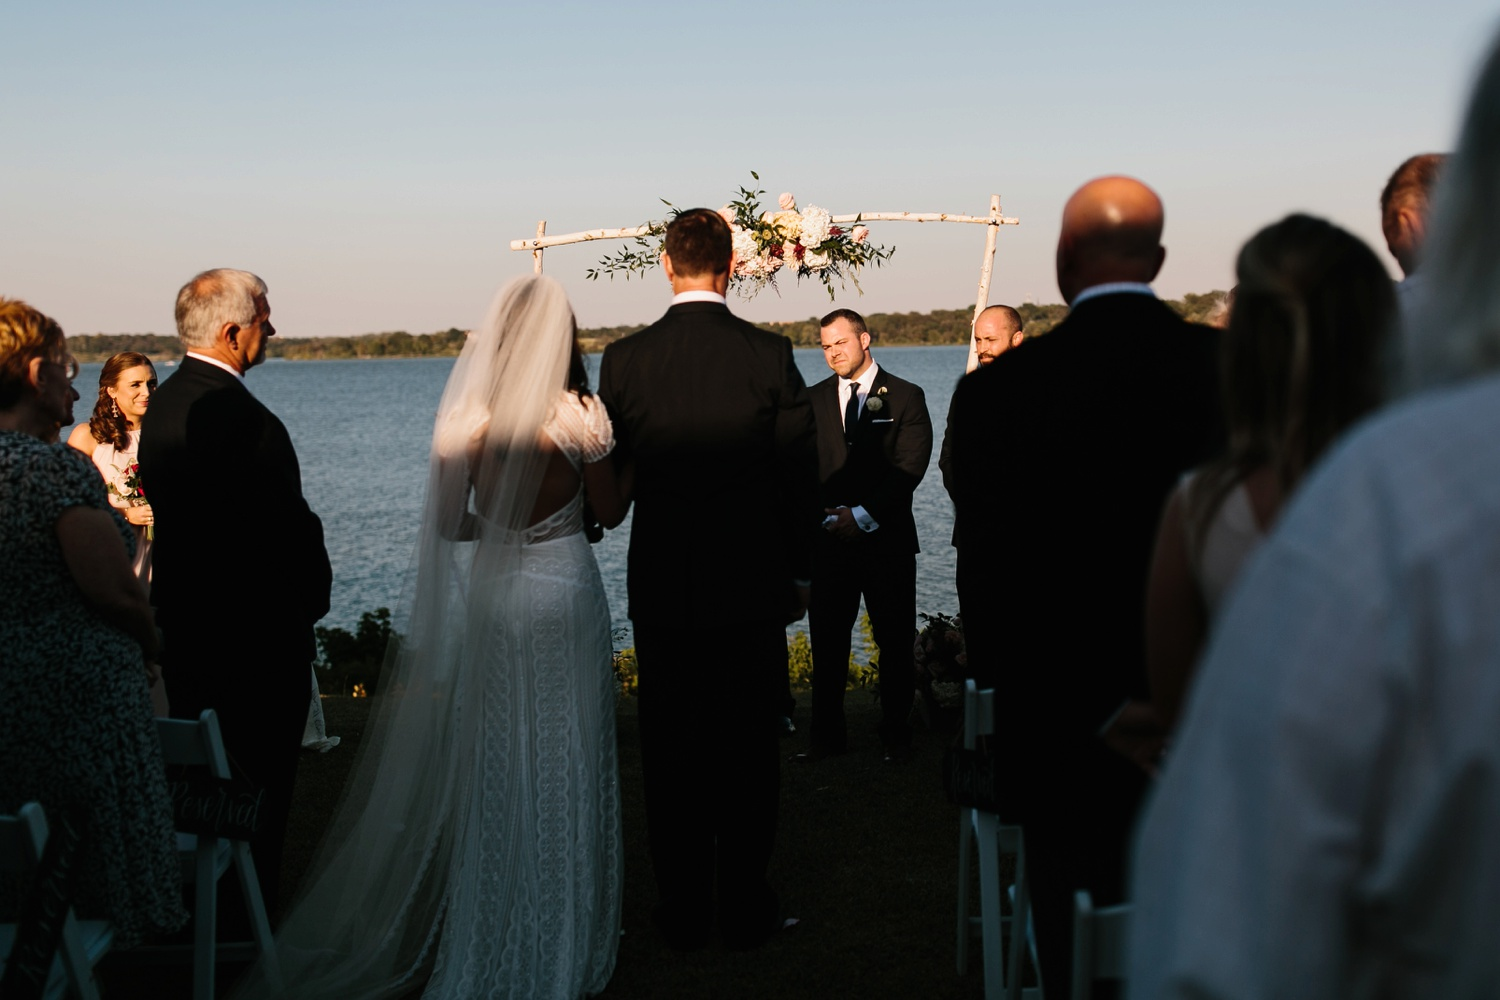 Kadee + Tyler | a raw, emotional wedding at the Filter Building on White Rock Lake in Dallas, TX by North Texas Wedding Photographer, Rachel Meagan Photography 124